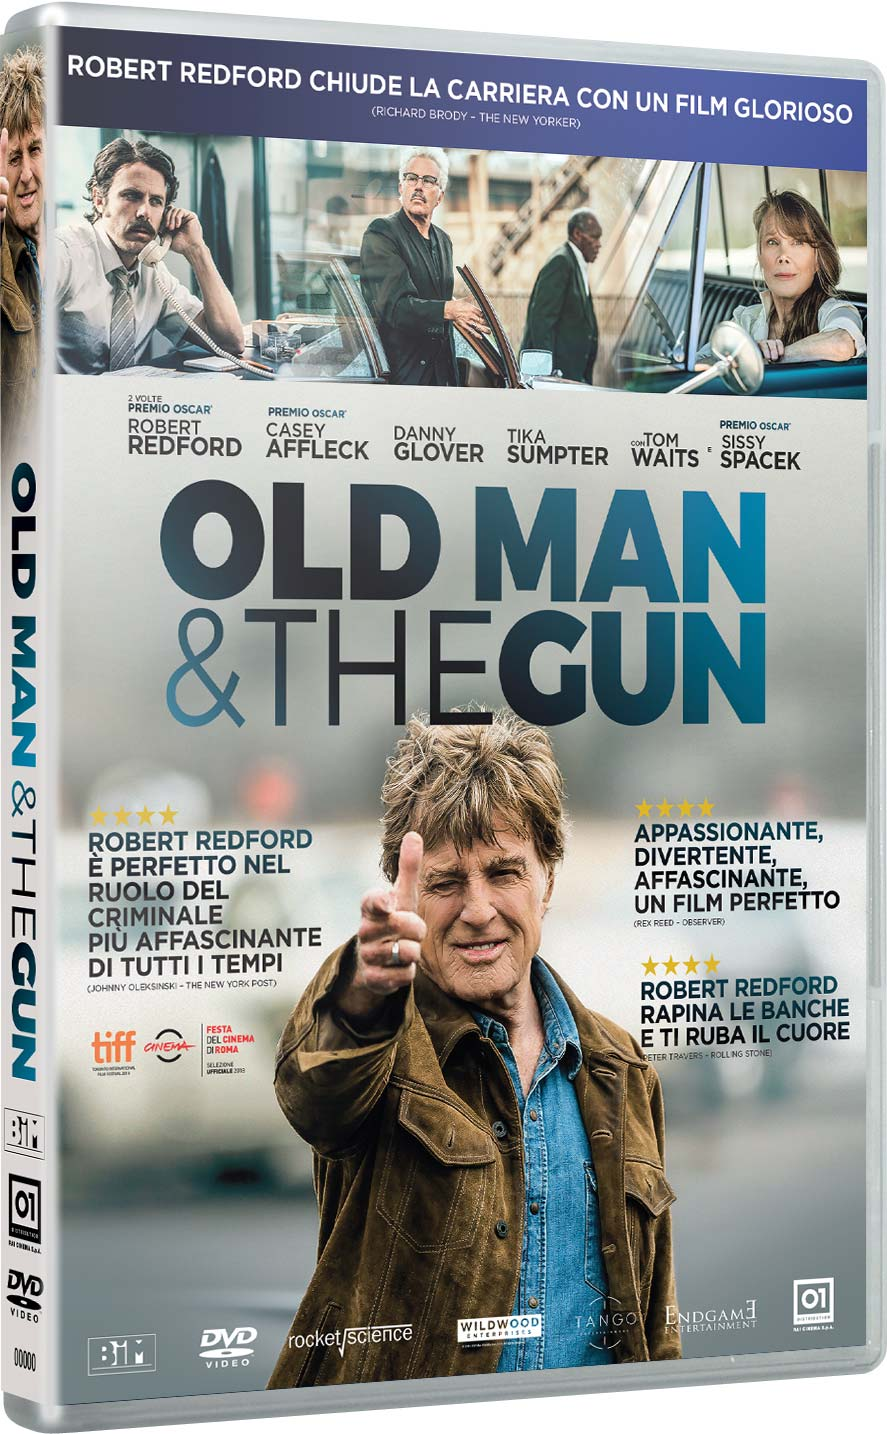 OLD MAN AND THE GUN (DVD)